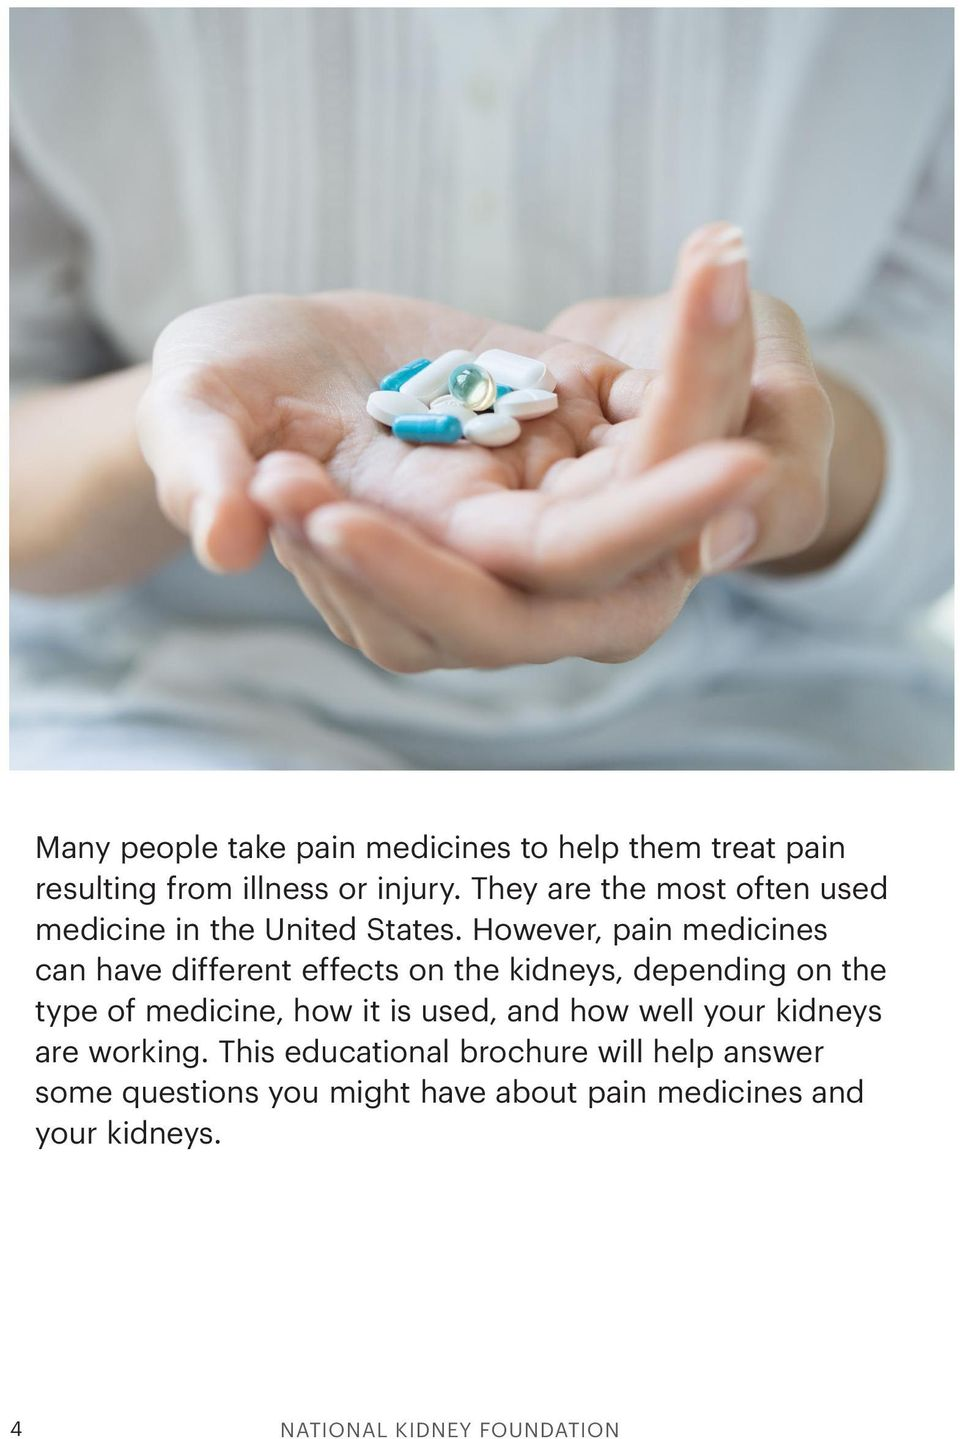 However, pain medicines can have different effects on the kidneys, depending on the type of medicine, how it is